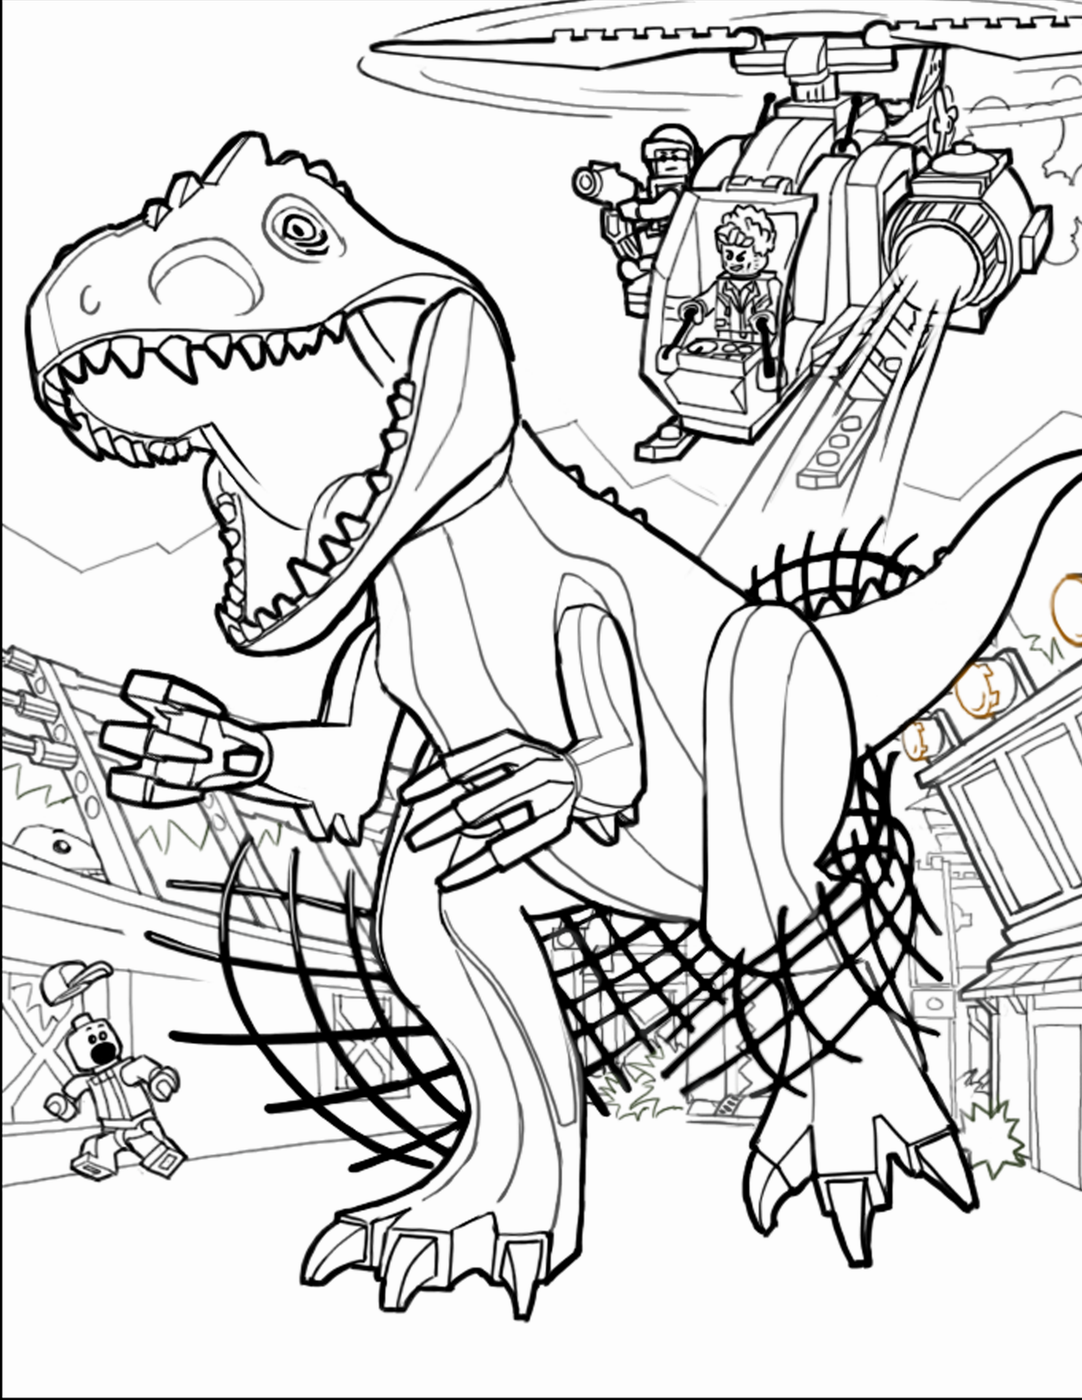 jurassic world coloring pages online - photo#30